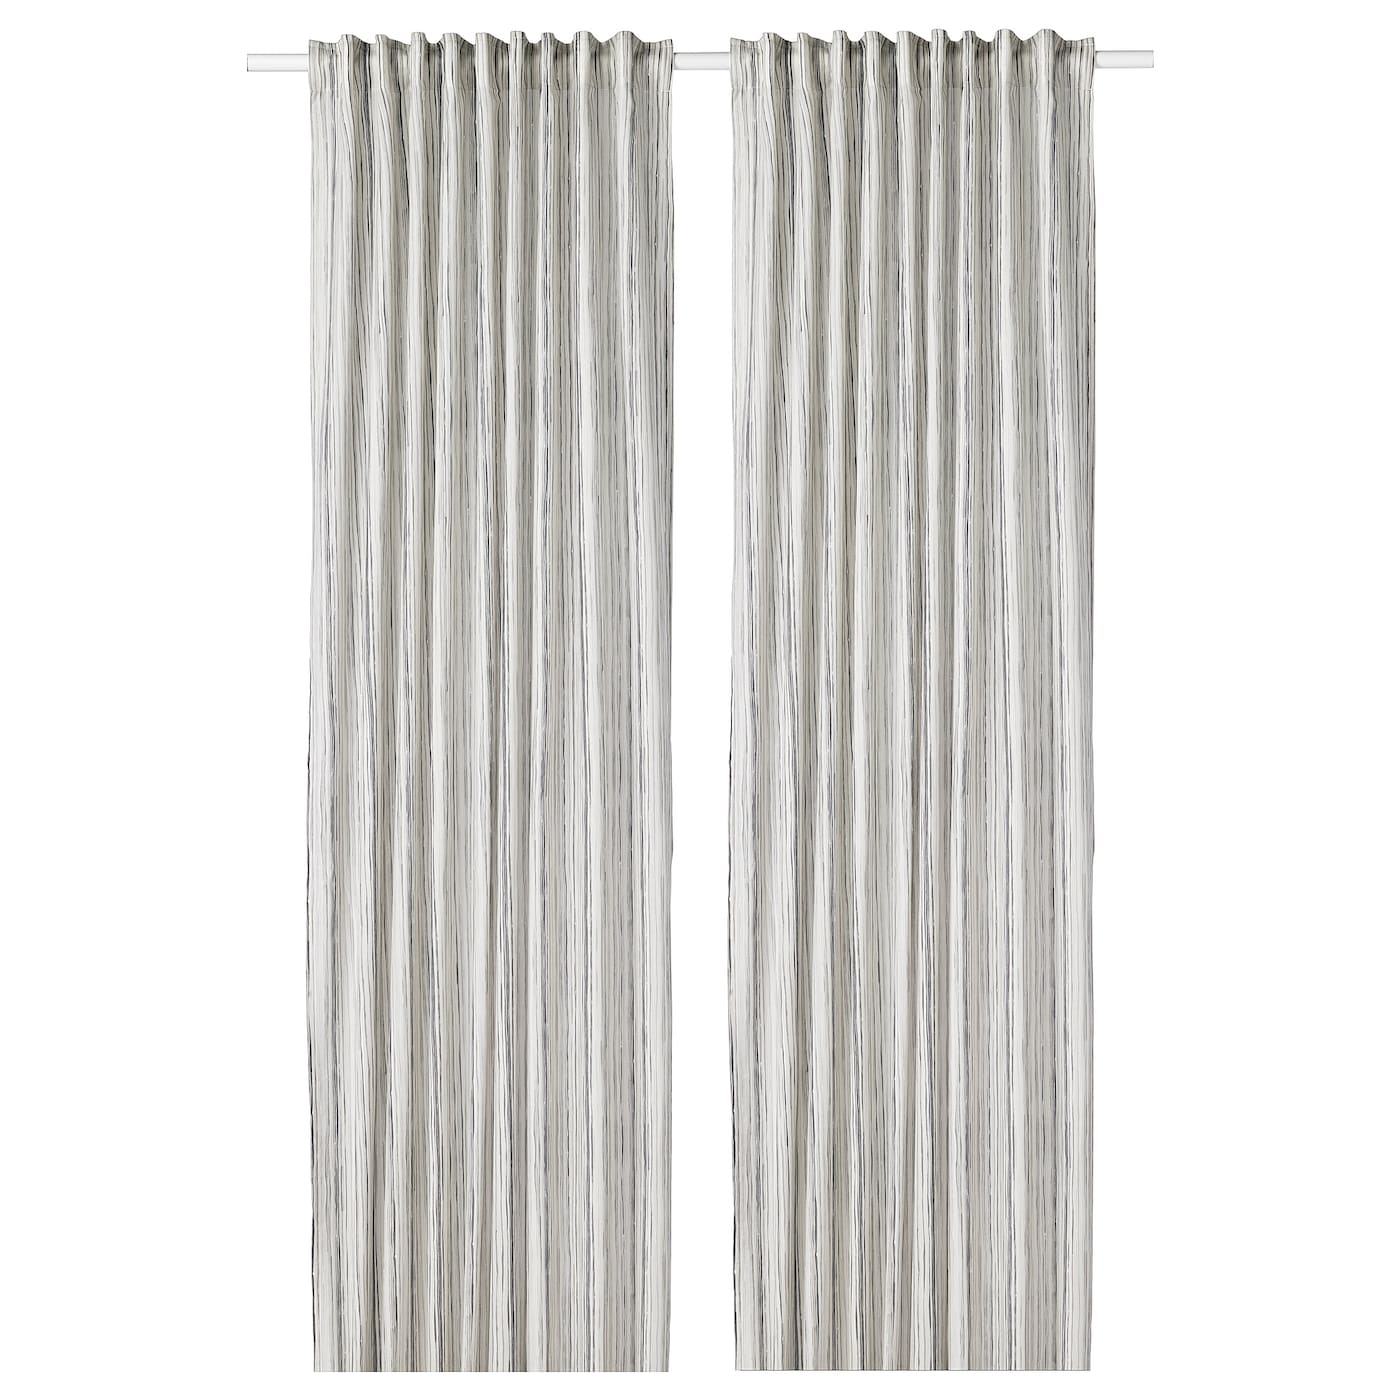 IKEA DAGRUN Curtains 1 Pair The Can Be Used On A Curtain Rod Or